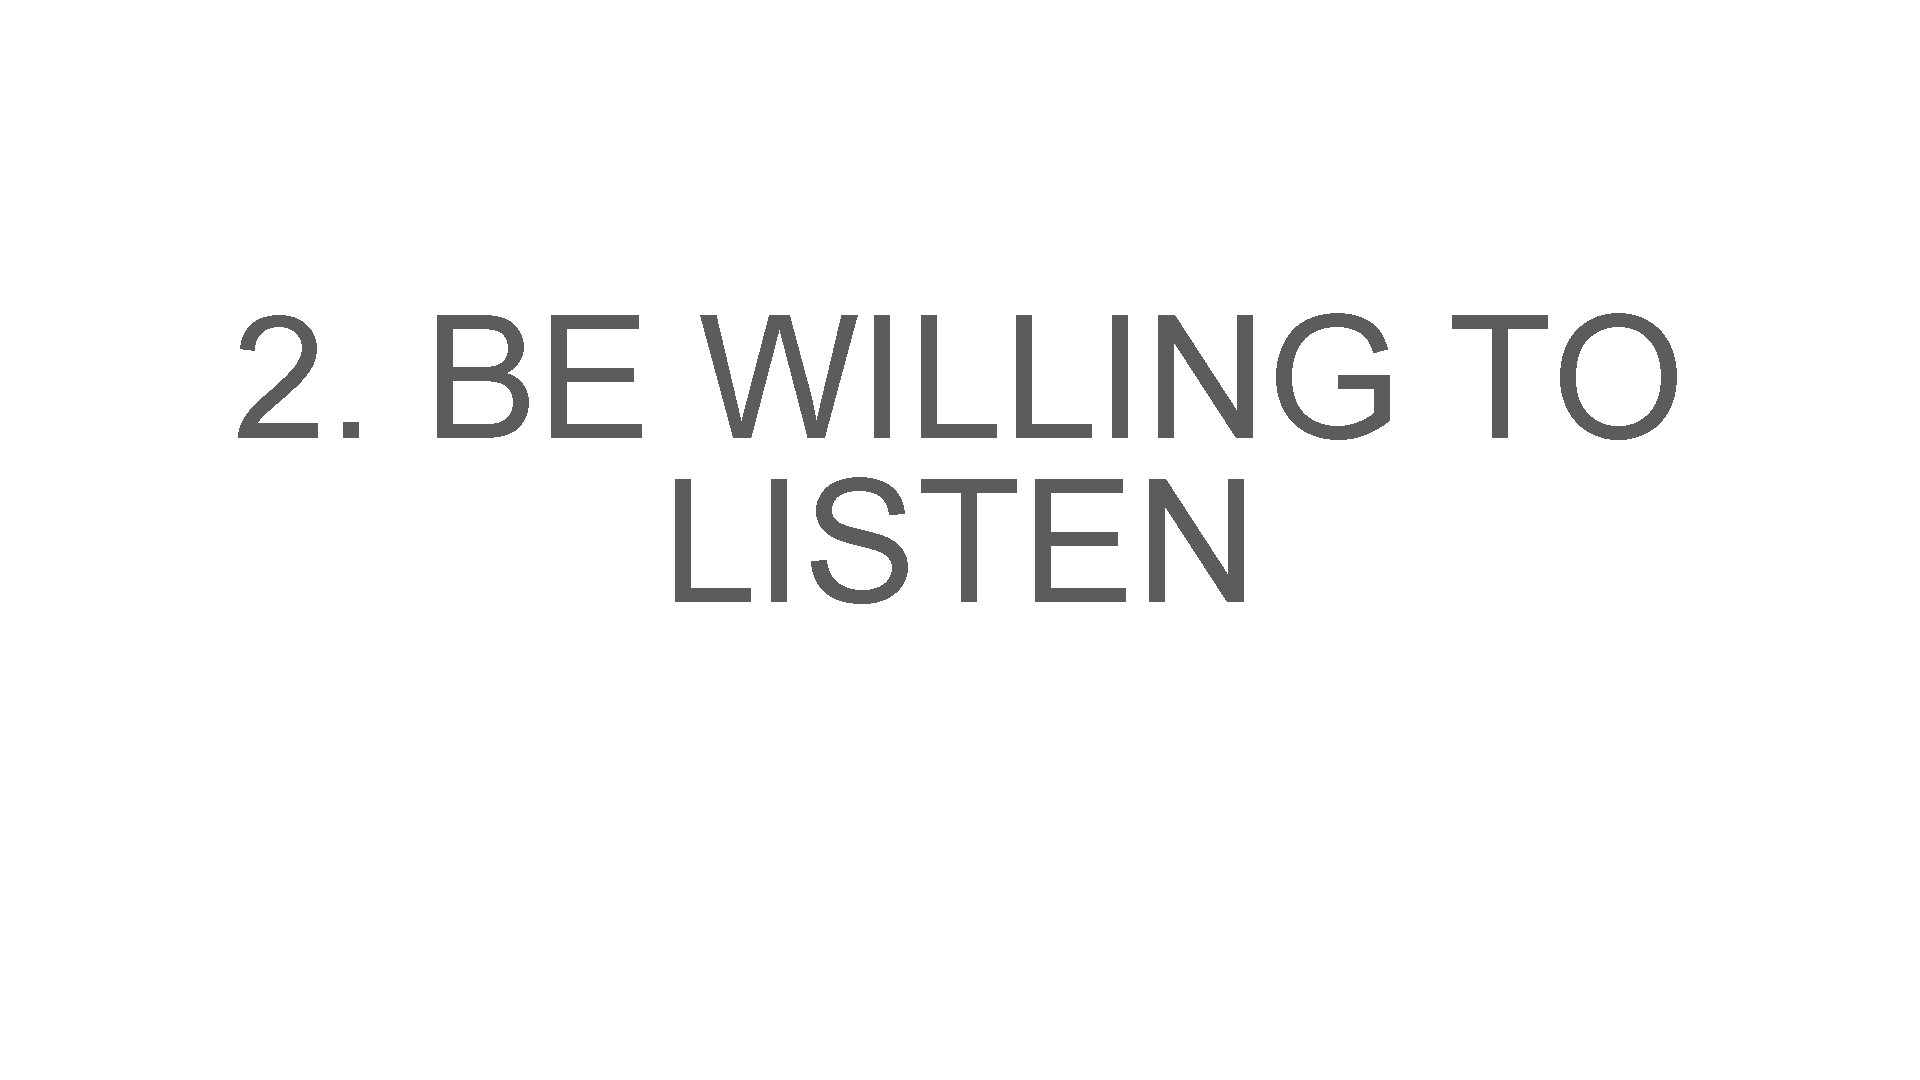 2. BE WILLING TO LISTEN